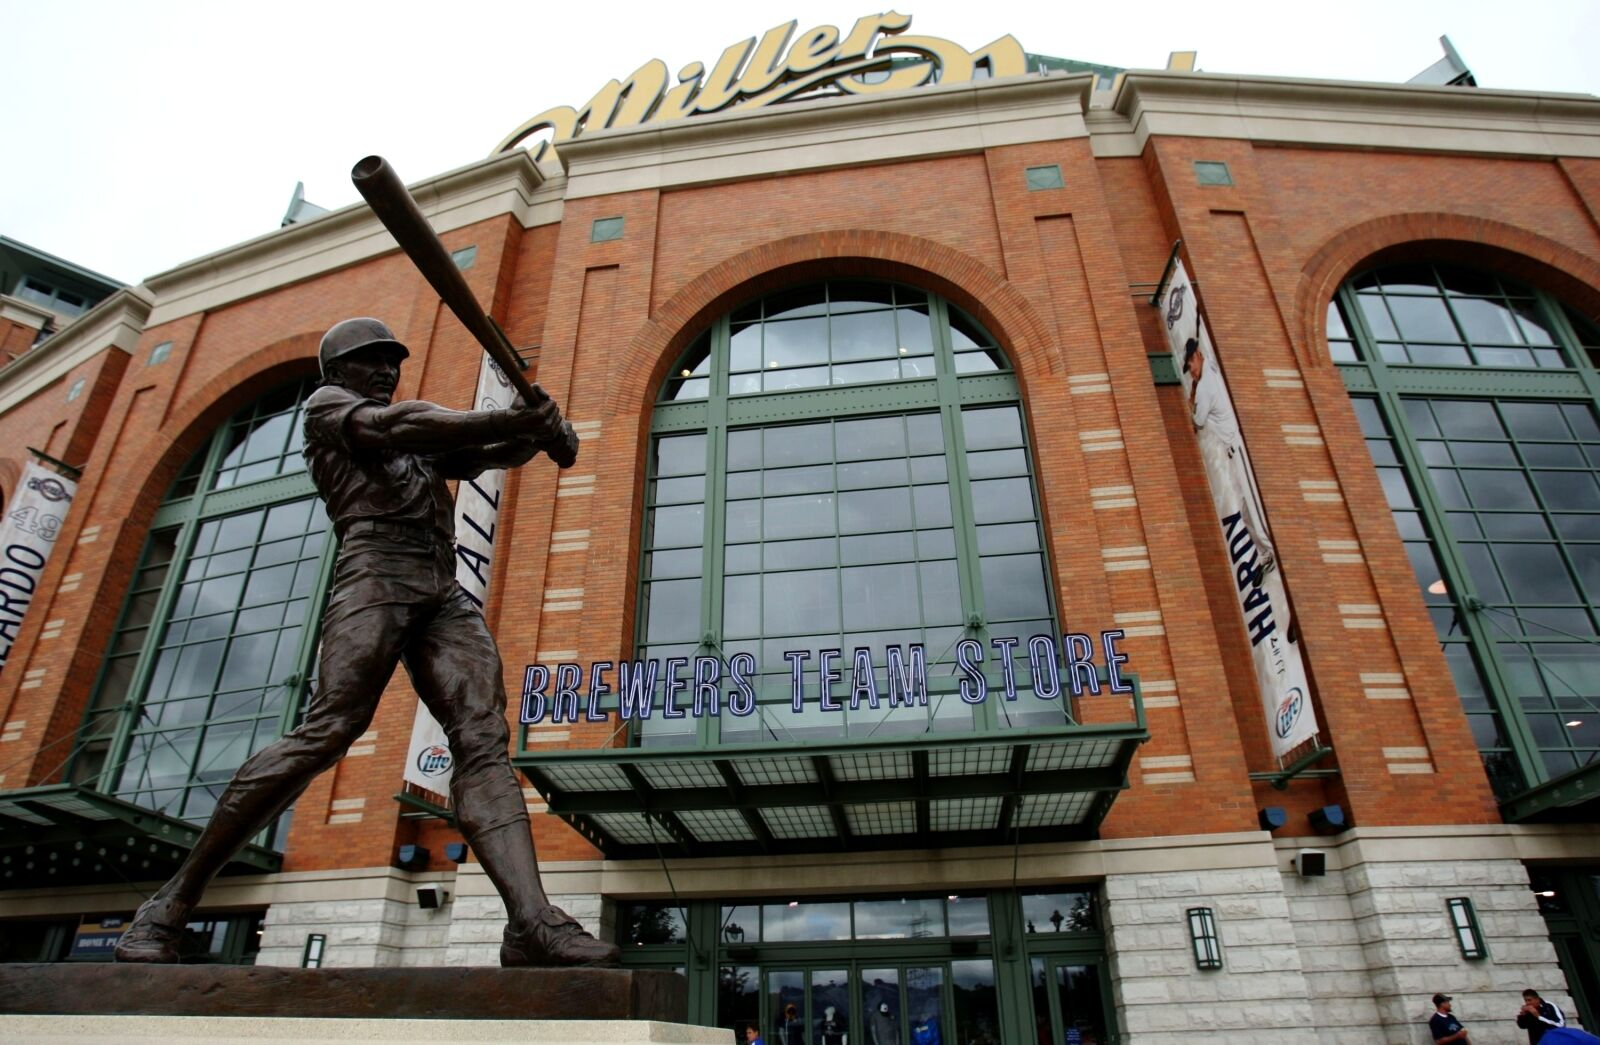 Brewers: This off-season has been a disappointment